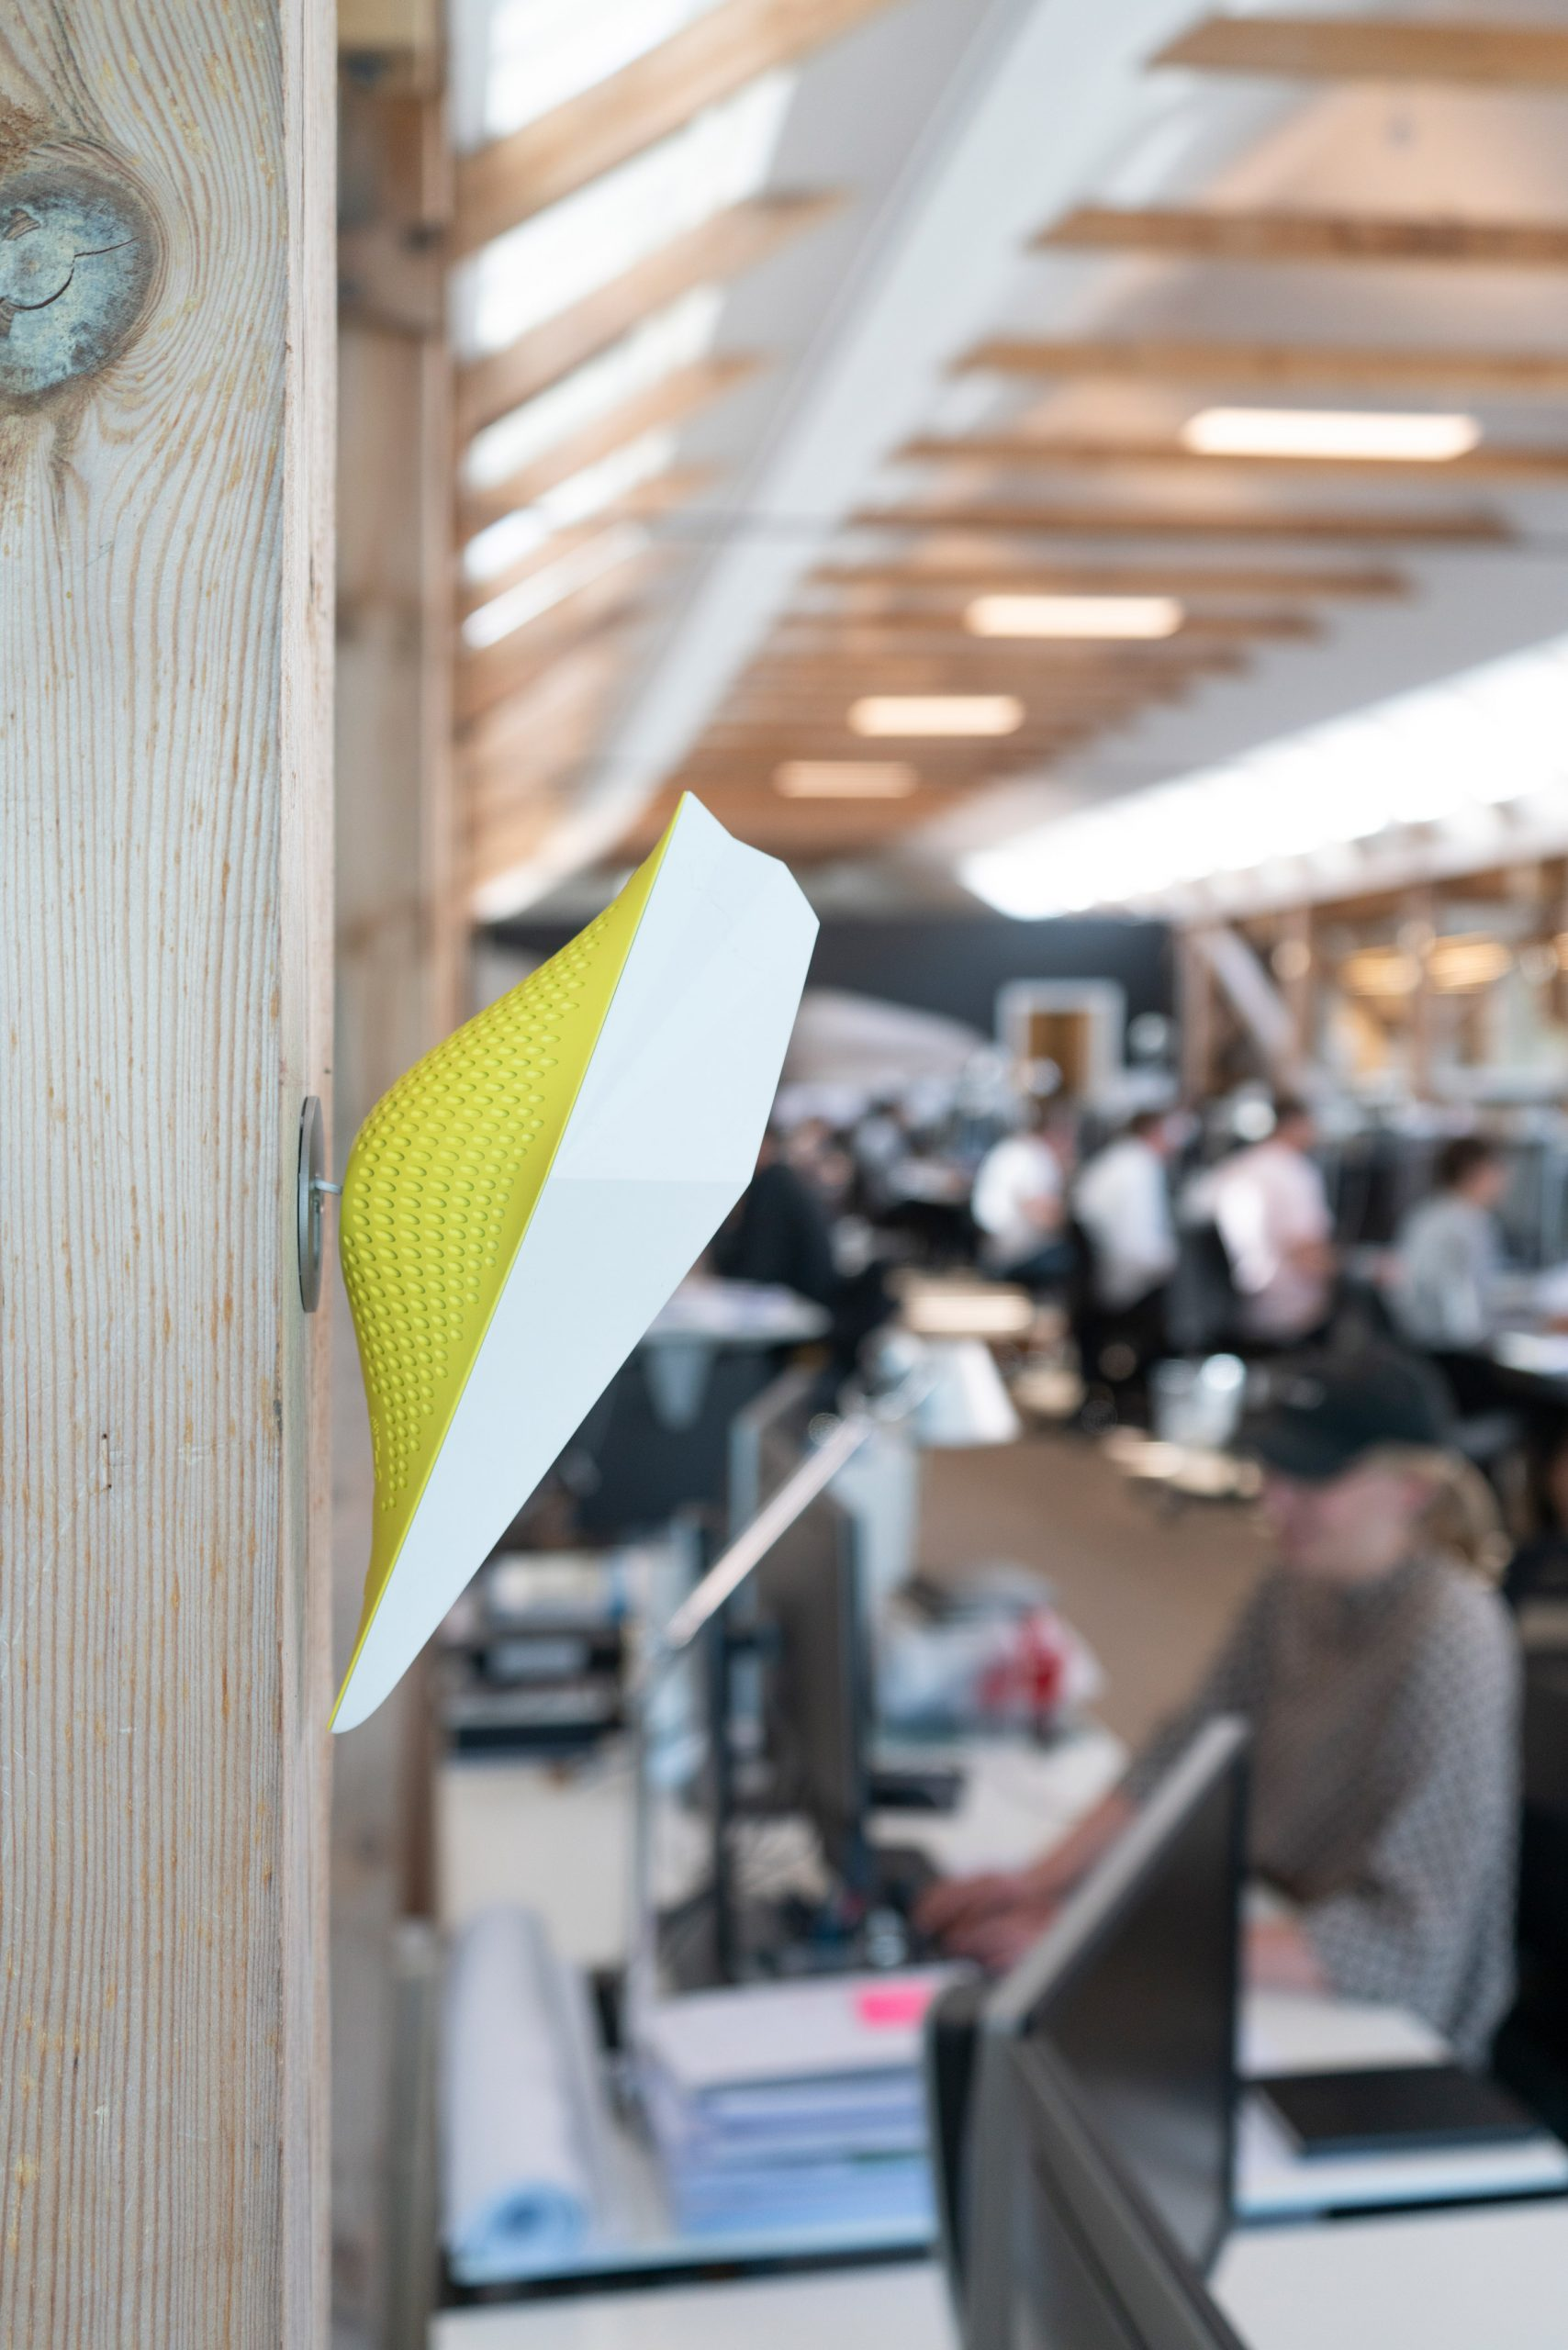 Airbird indoor air quality sensor by GXN